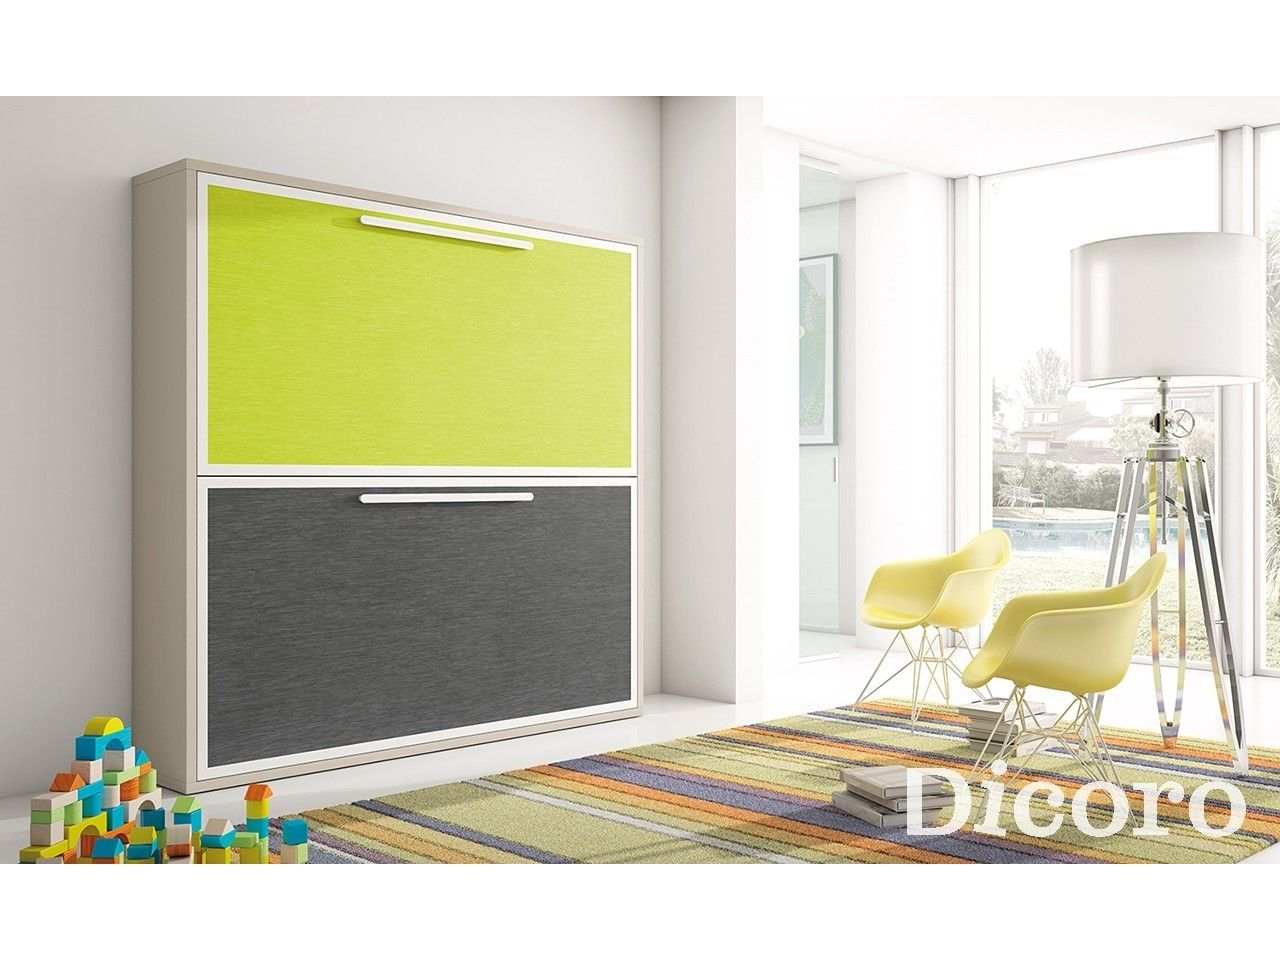 Cama abatible doble dreams home 39 in - Camas infantiles abatibles ...